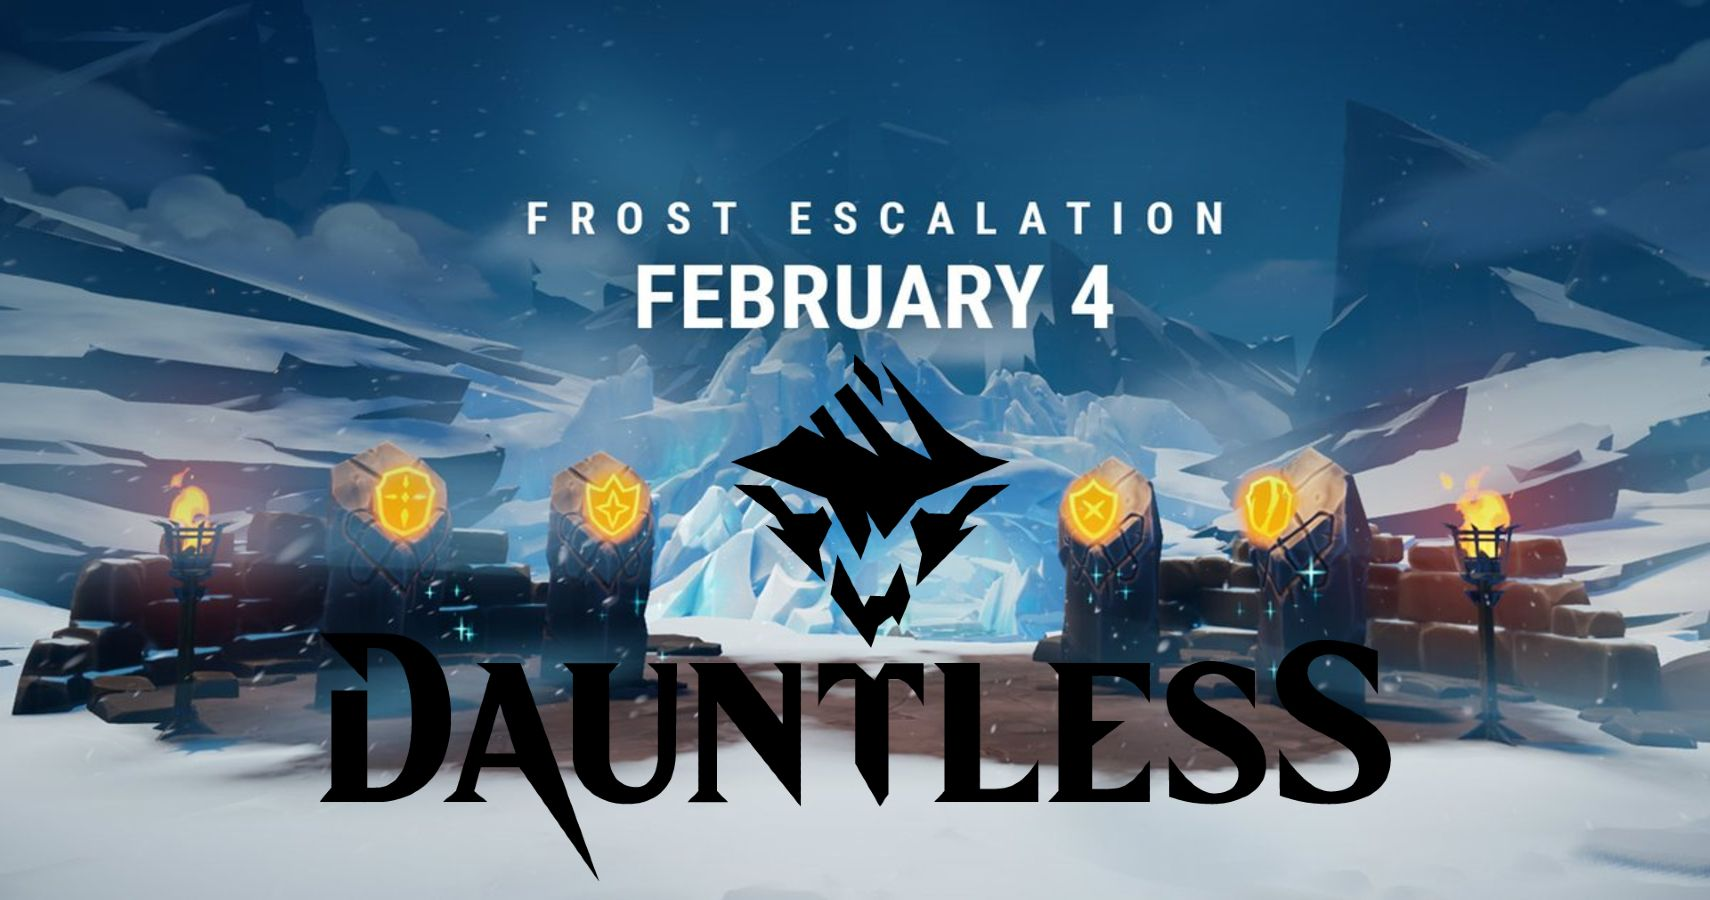 Dauntless Launches Frost Escalation On February 4